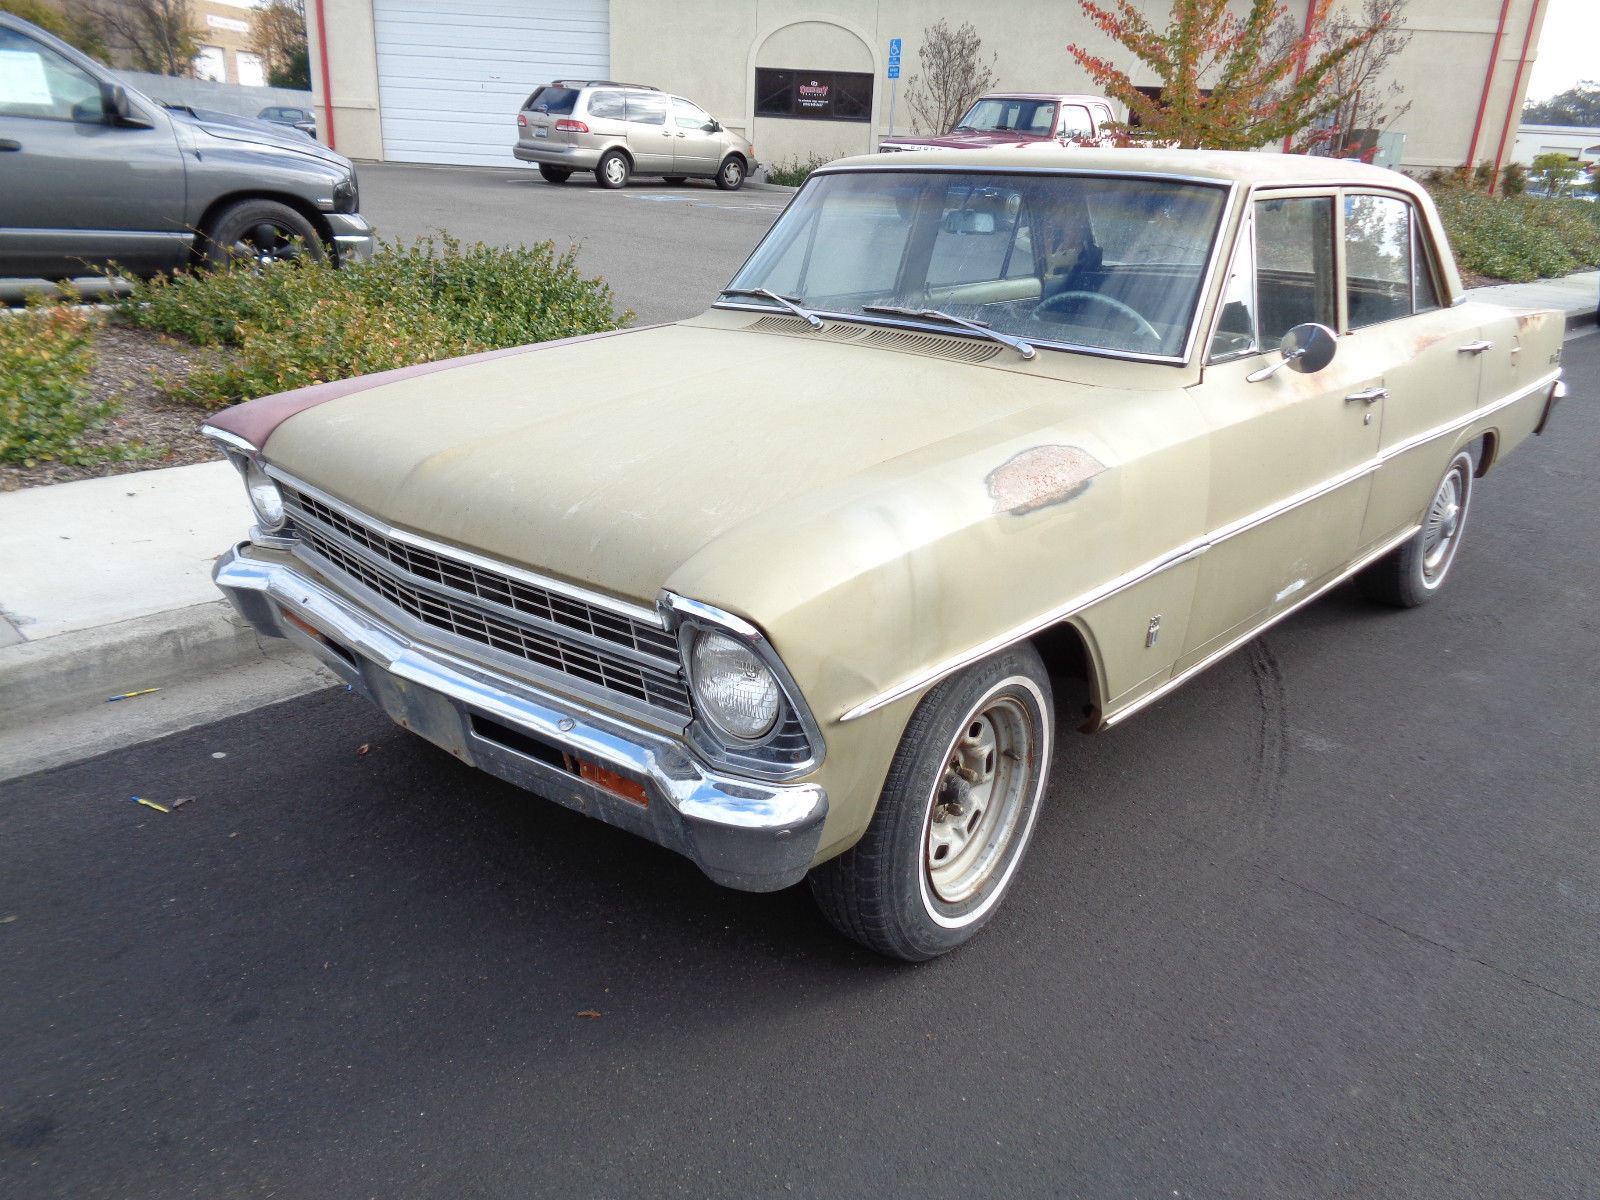 1967 Chevy Nova 4 Door Project Car Runs And Drives Classic Chevrolet Nova 1967 For Sale